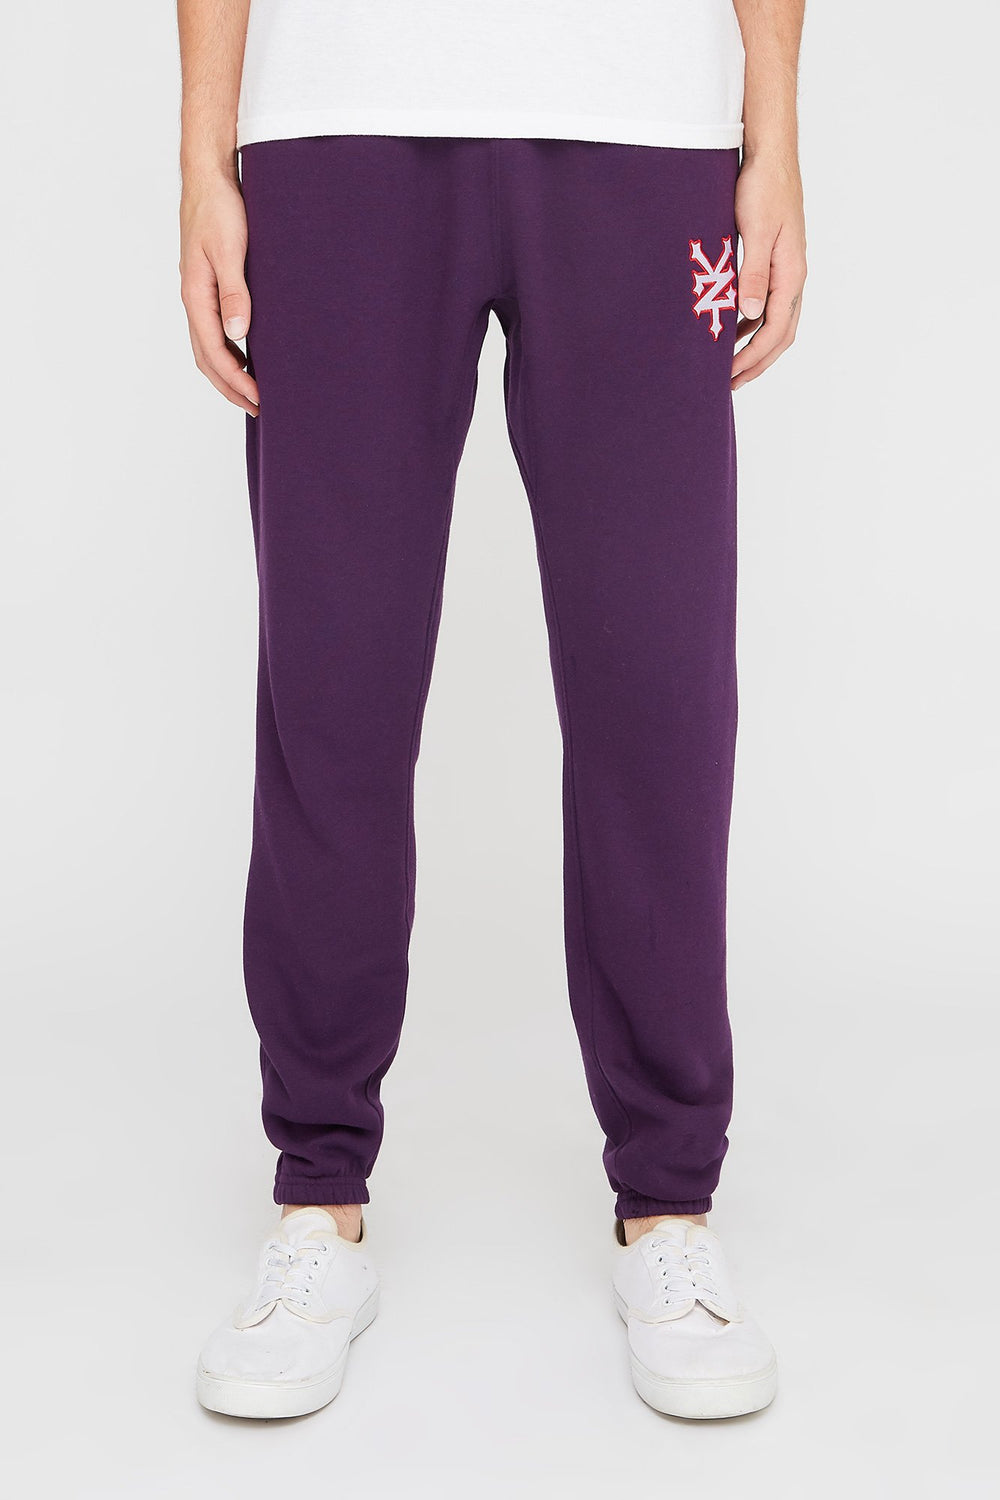 Zoo York Mens Embroidered Logo Joggers Dark Purple